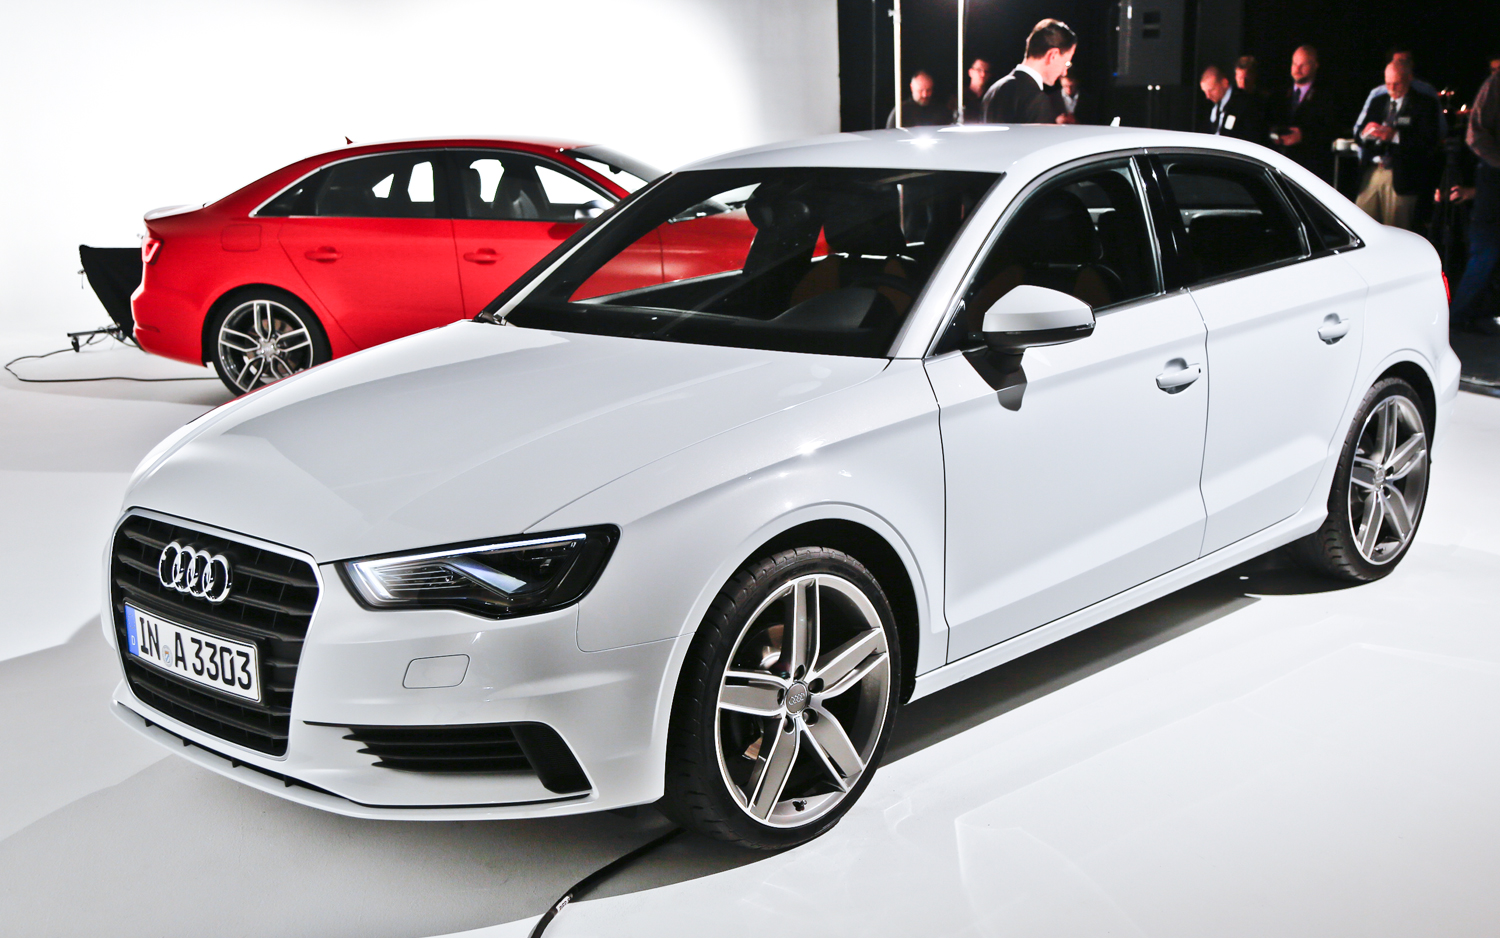 2015 audi a3 design white 319 cars performance reviews. Black Bedroom Furniture Sets. Home Design Ideas